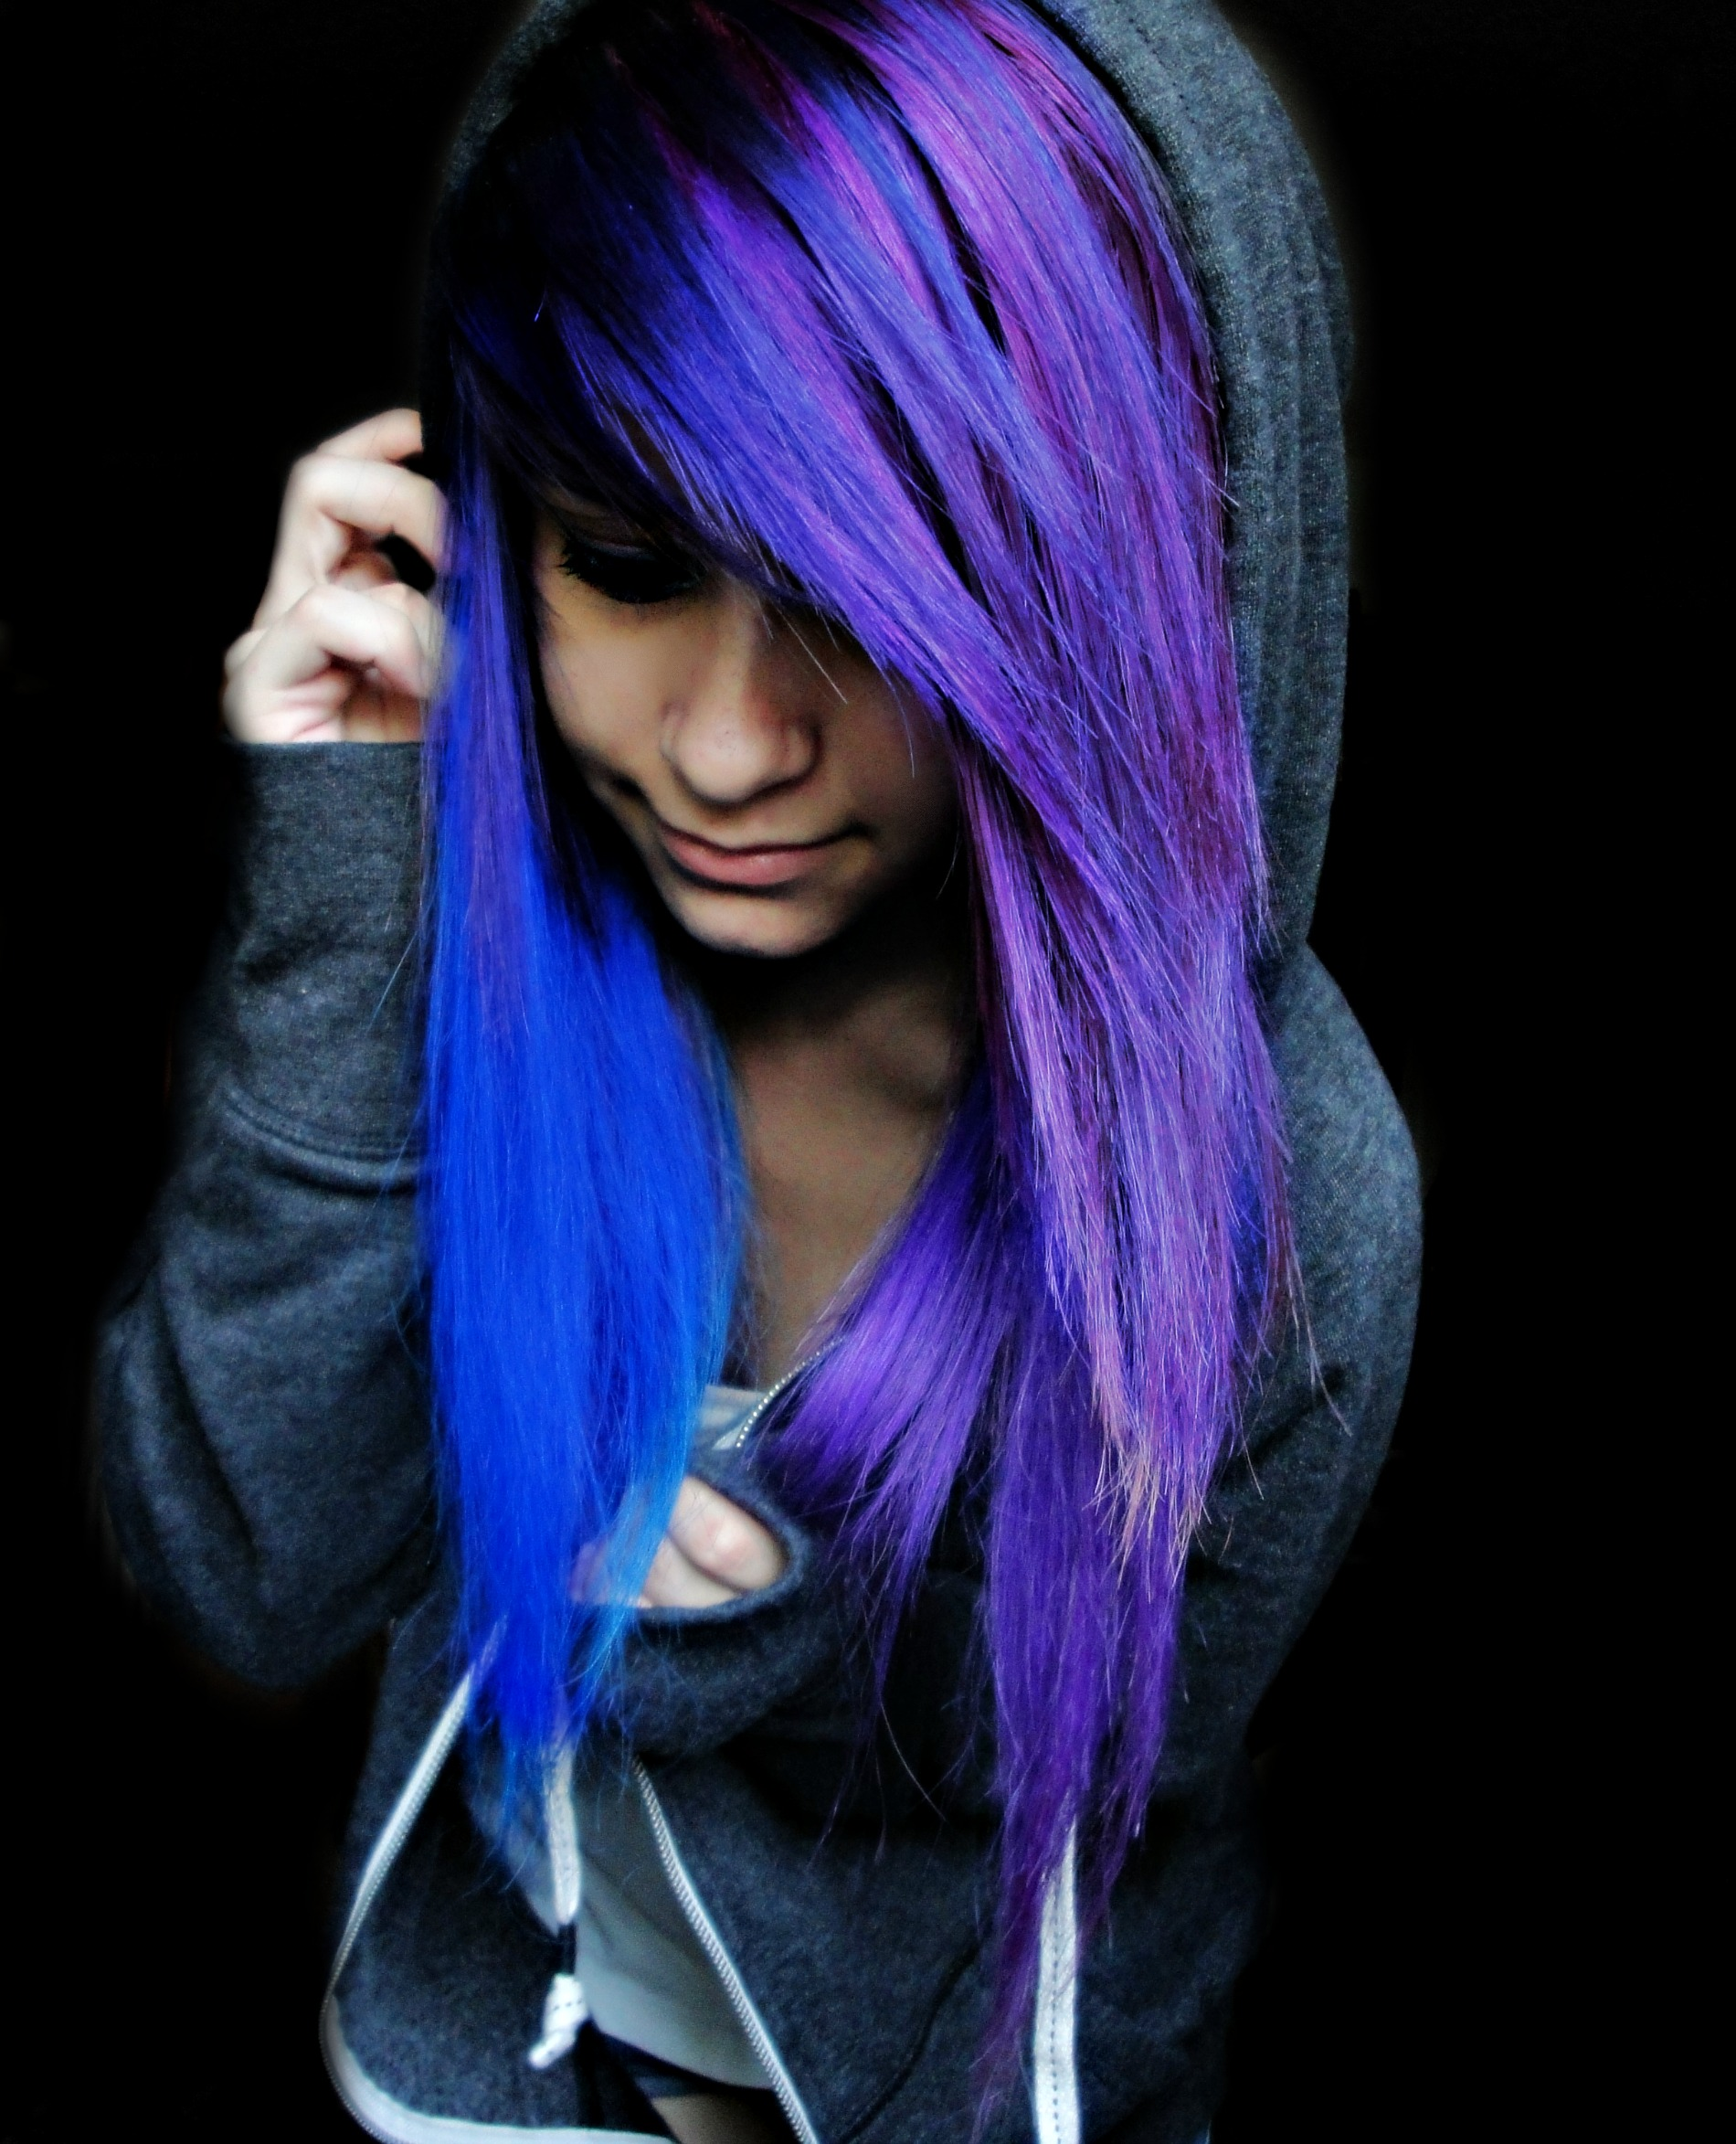 Lila Blaue Haare Scene Girl Emo And Scene Hairstyles Photo 31888846 Fanpop